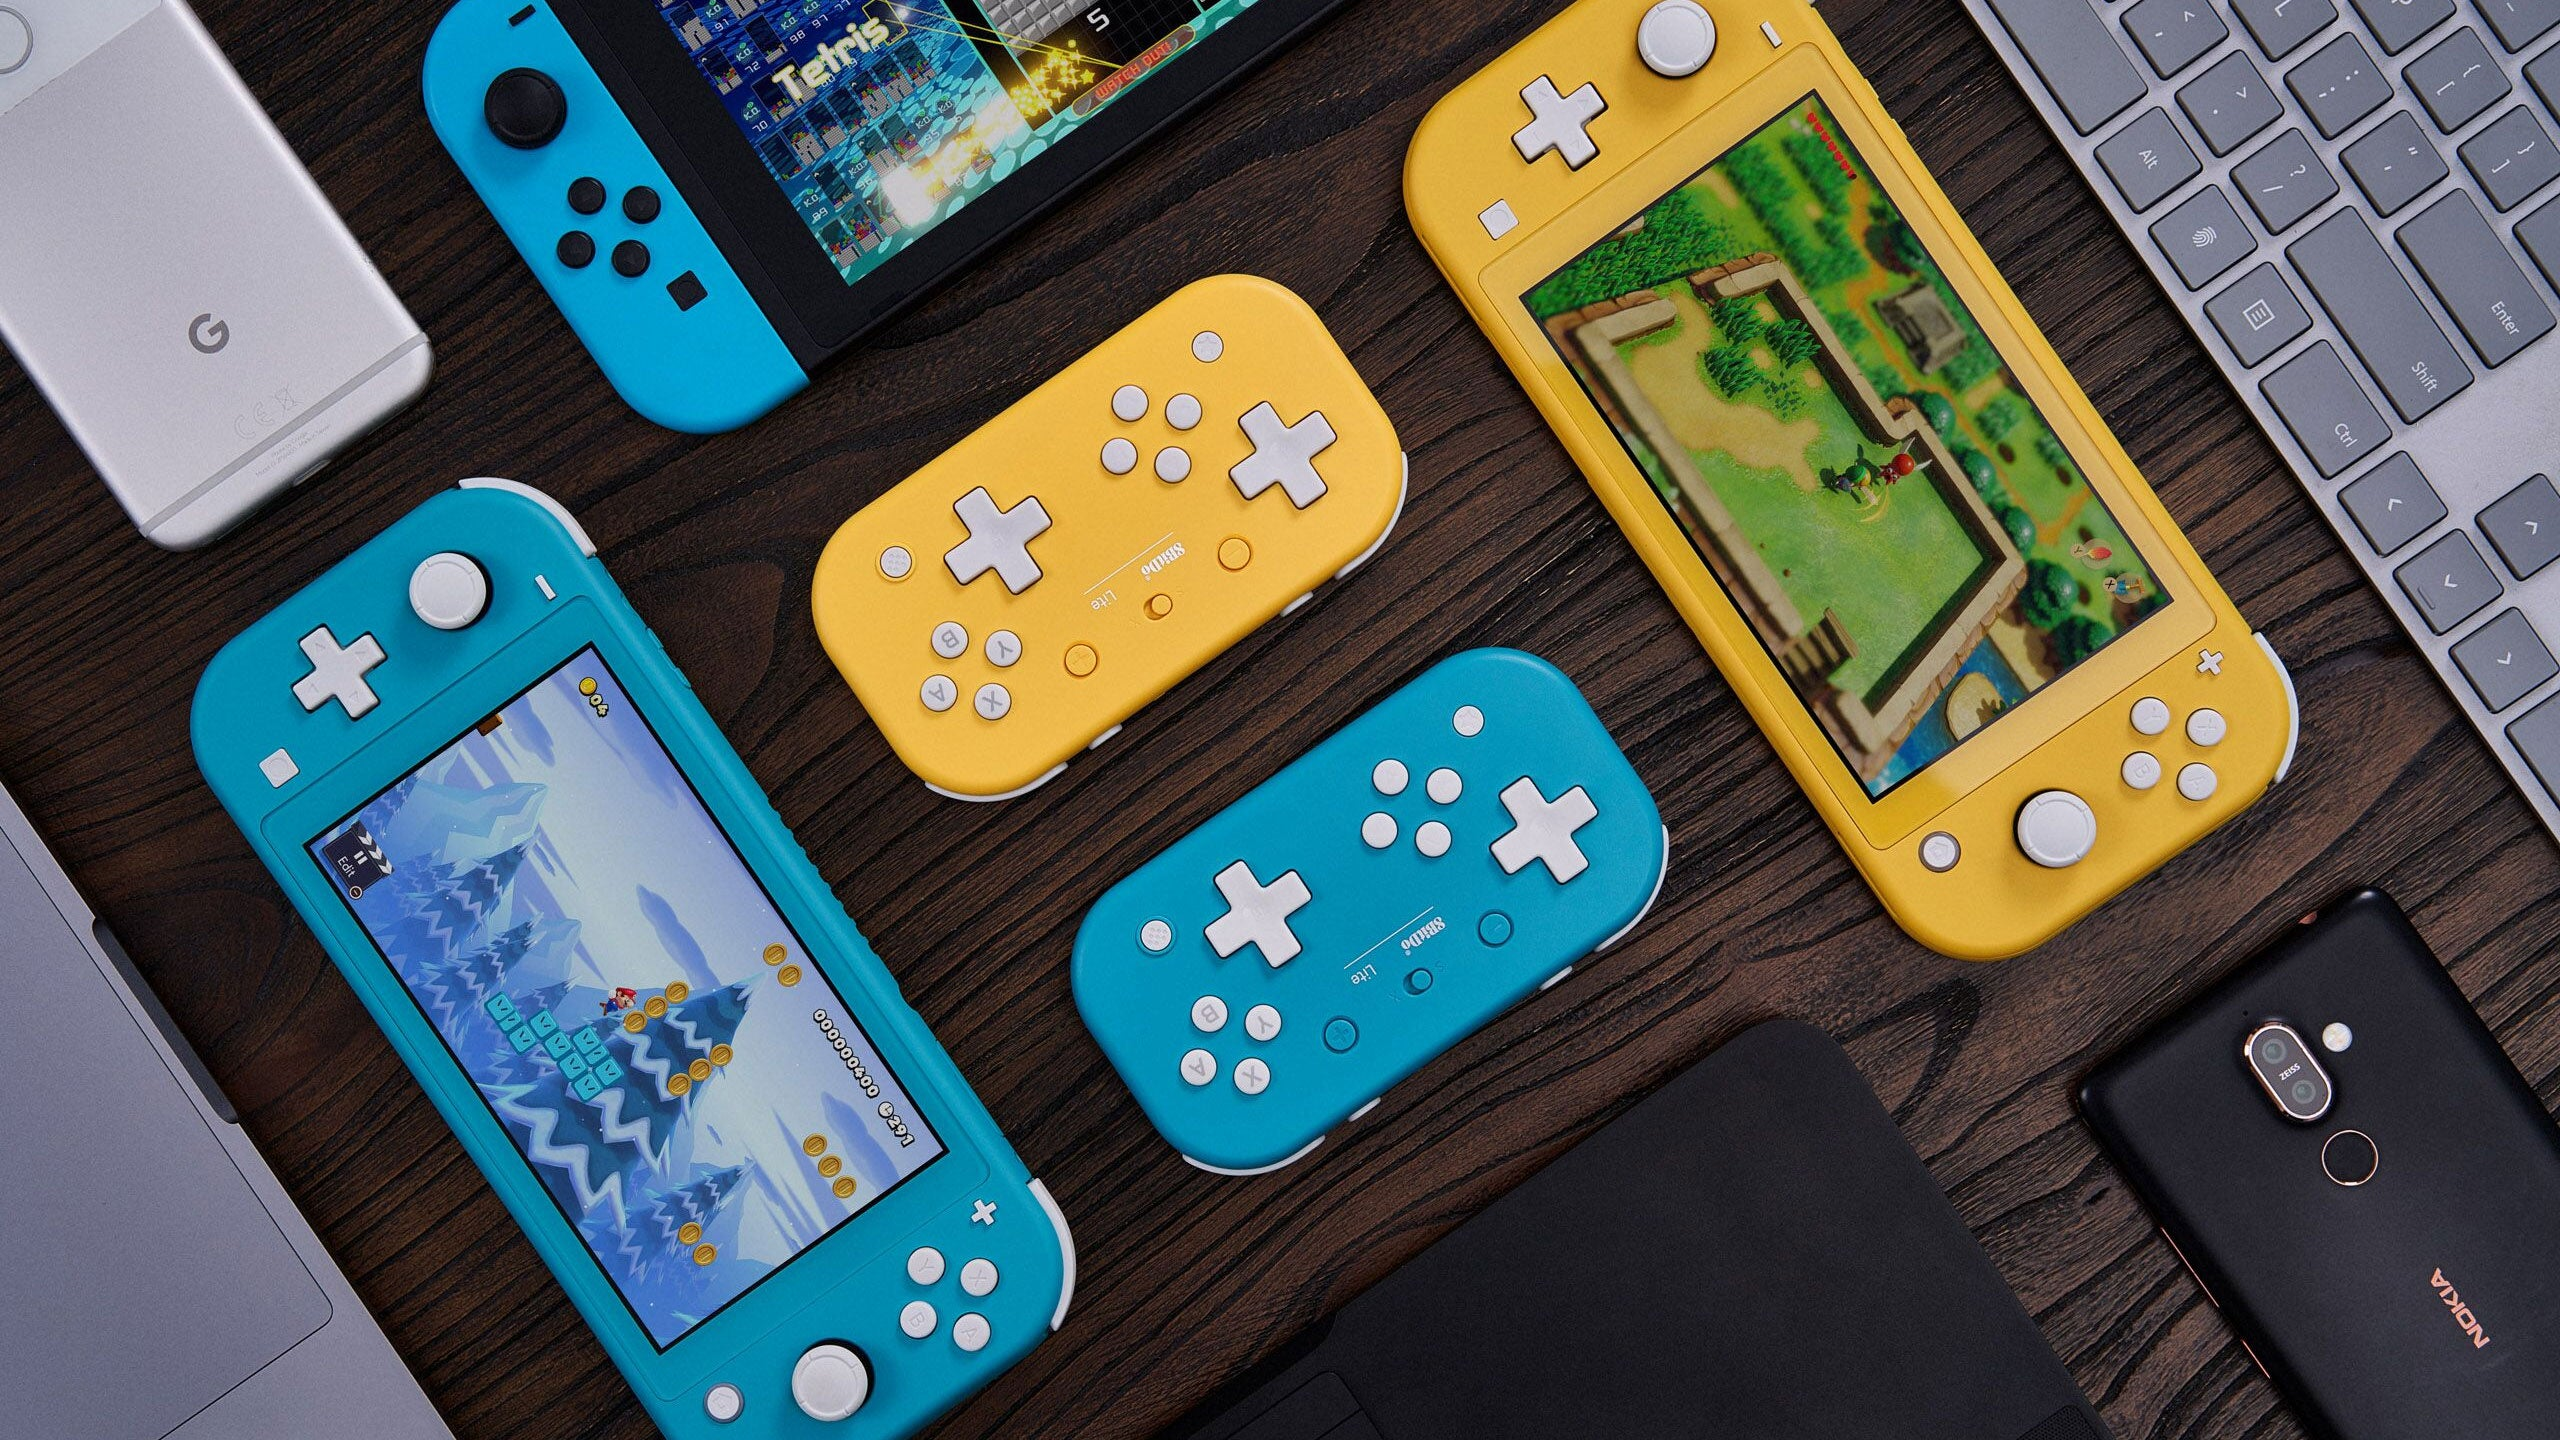 8BitDo's Switch Lite-Inspired Controller Has Two D-Pads